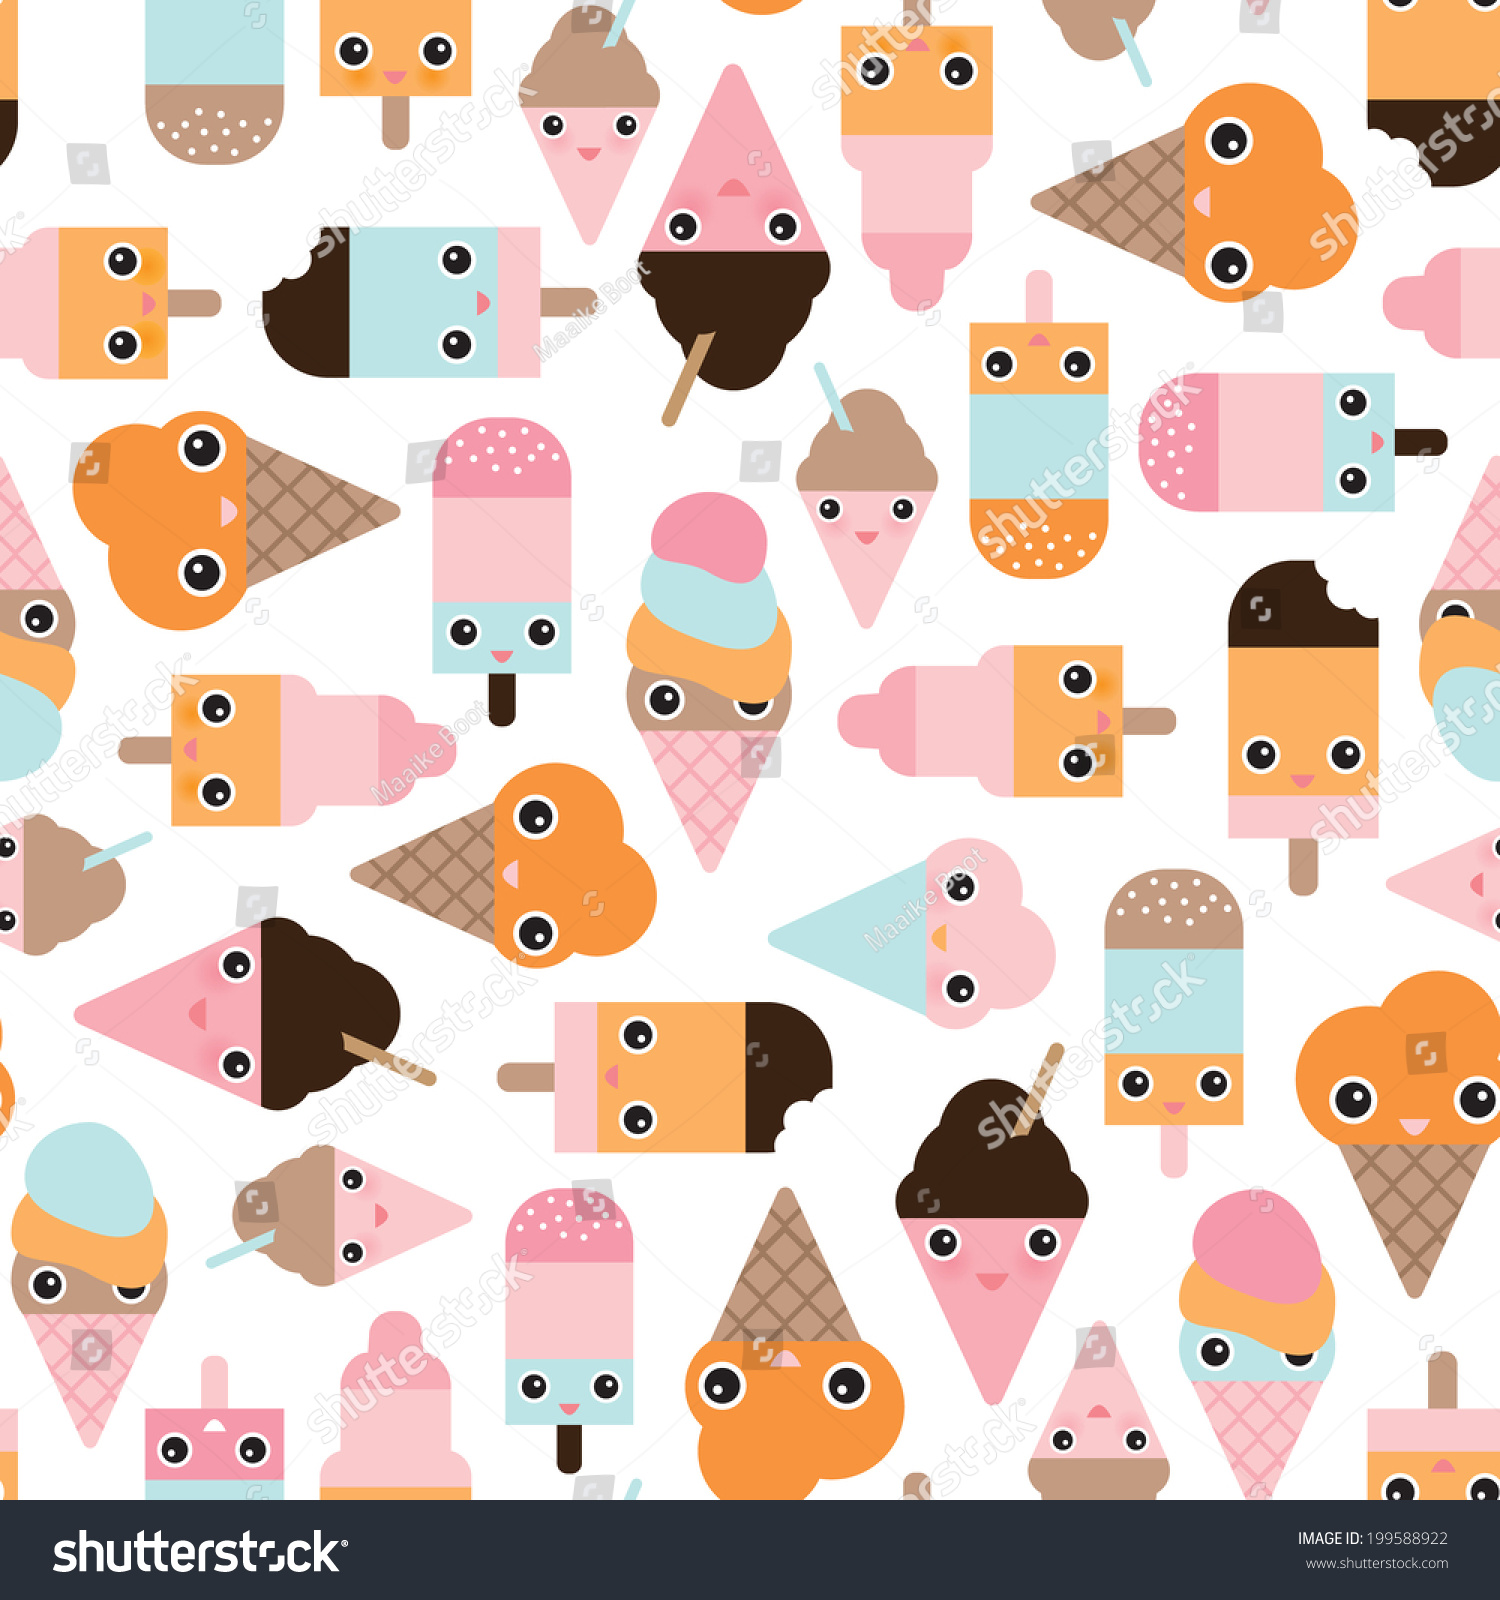 Seamless Ice Cream Wallpaper Royalty Free Stock Images: Royalty-free Seamless Summer Ice Cream Popsicle Cute